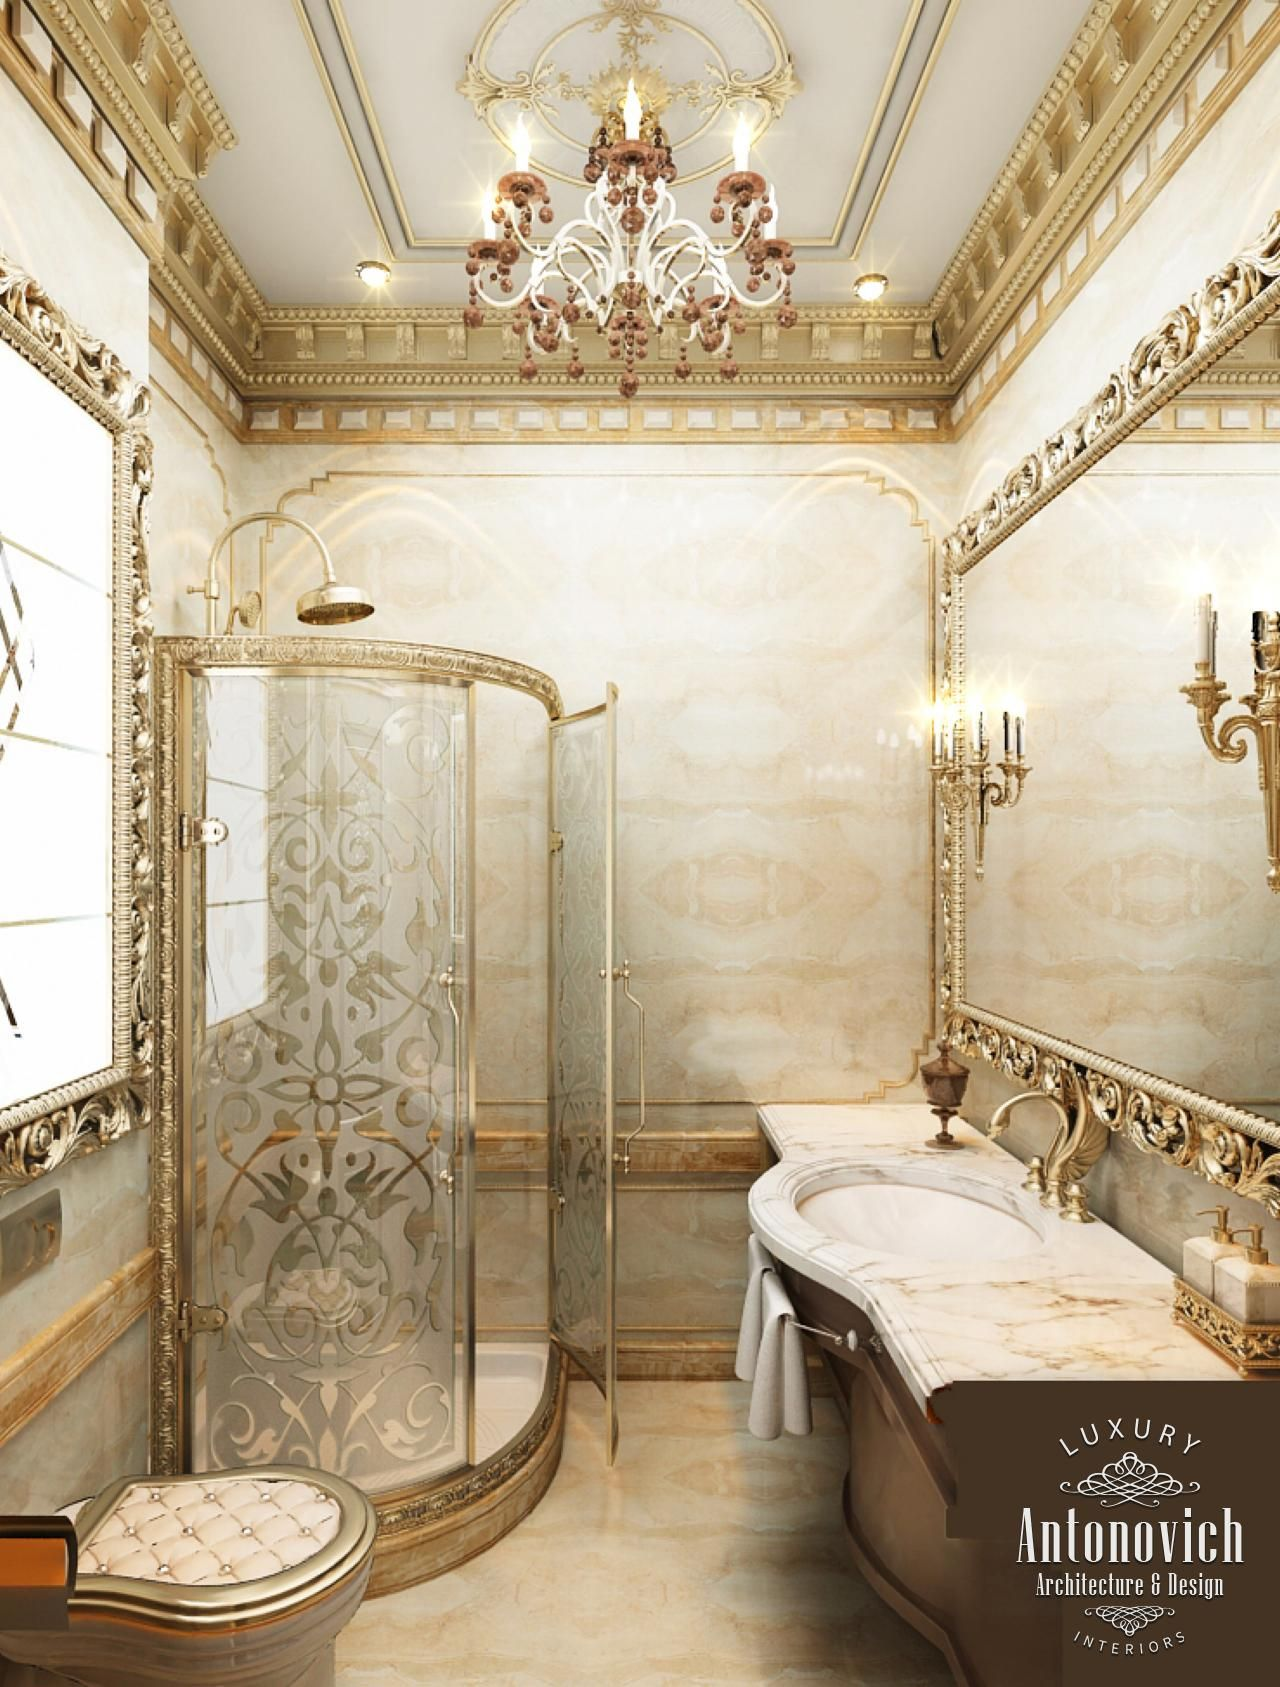 Villa interior design in dubai villas project in mohammed bin zayed city photo 35 luxury Bathroom design jobs dubai